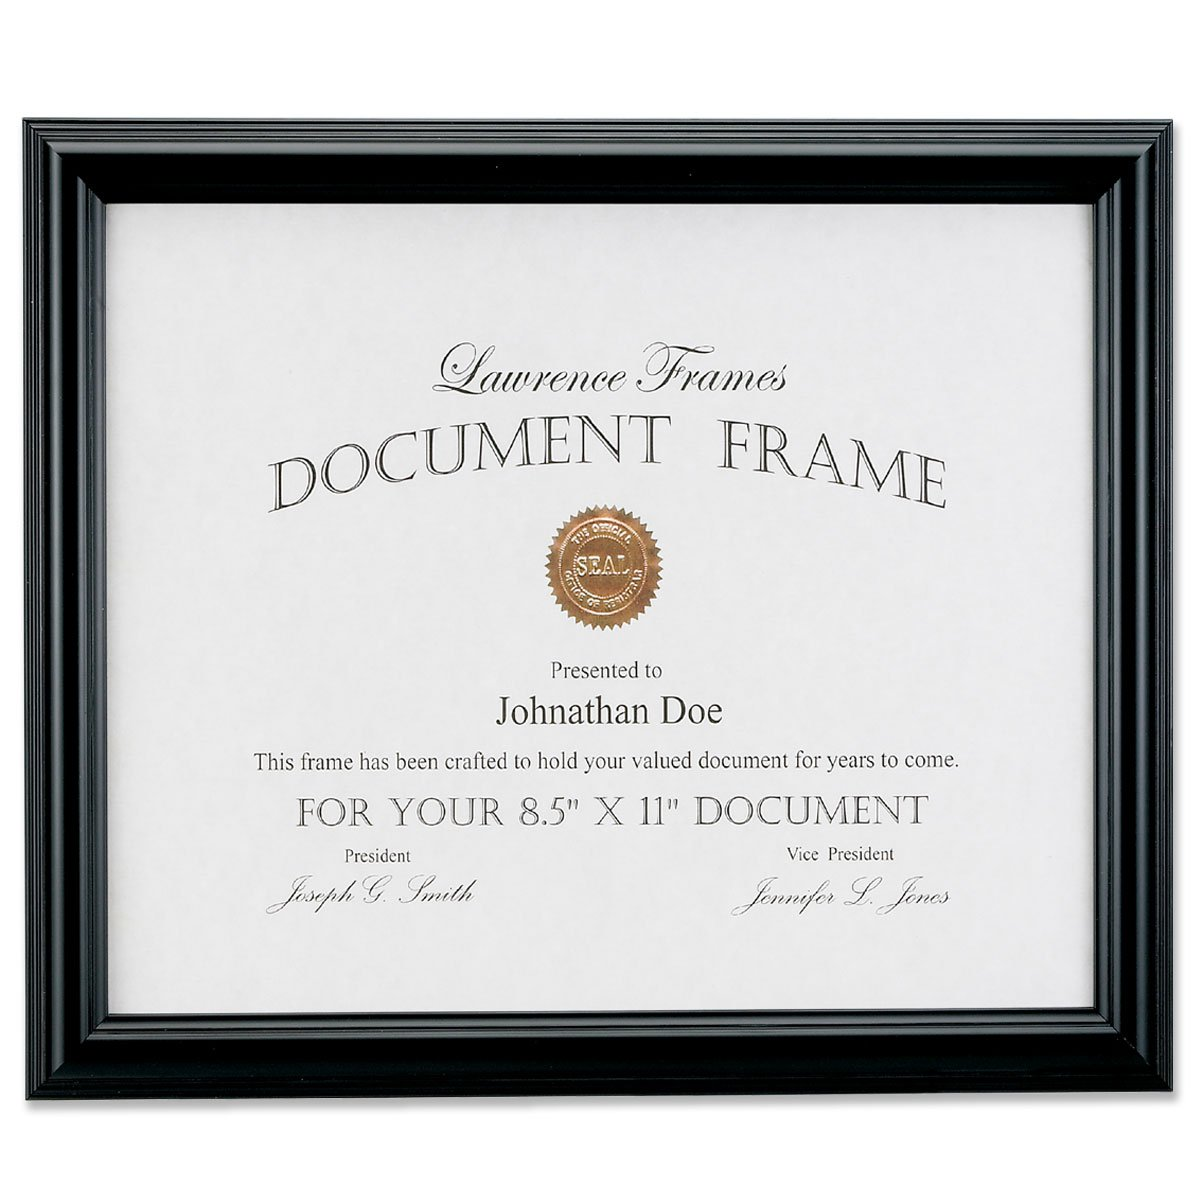 Lawrence Frames Black Document Picture Frame, 8.5 by 11-Inch 185081